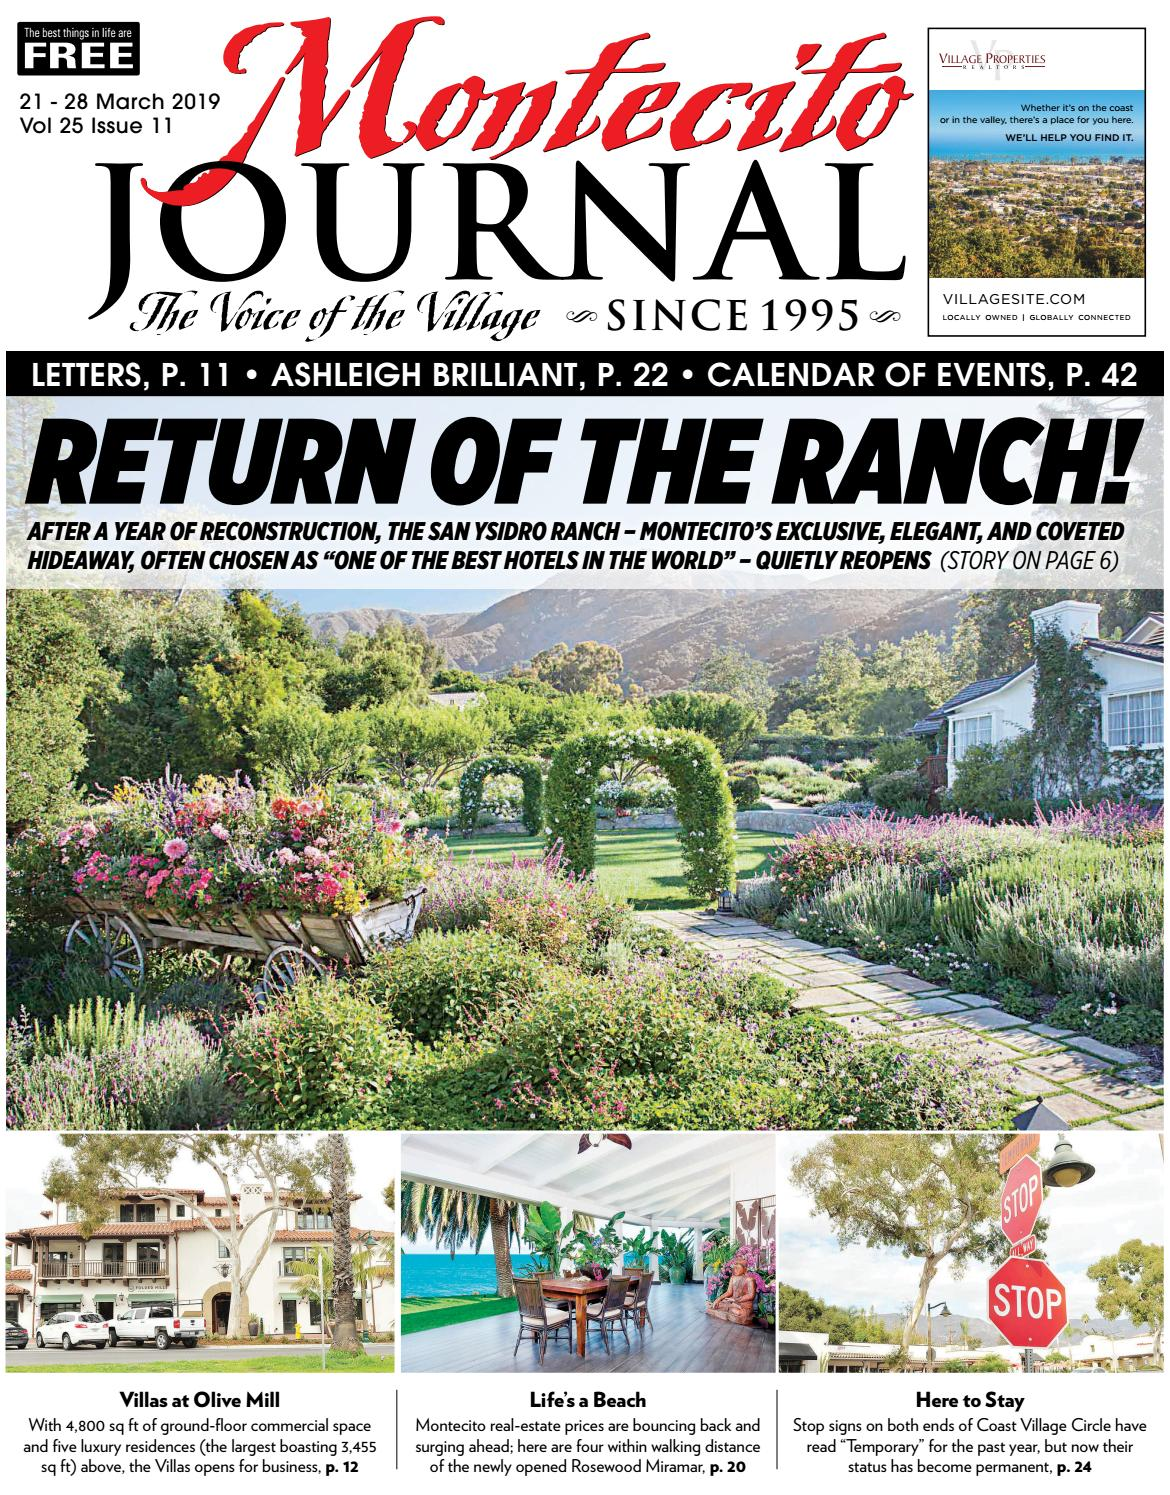 ce206c2a09 Return of the Ranch by Montecito Journal - issuu